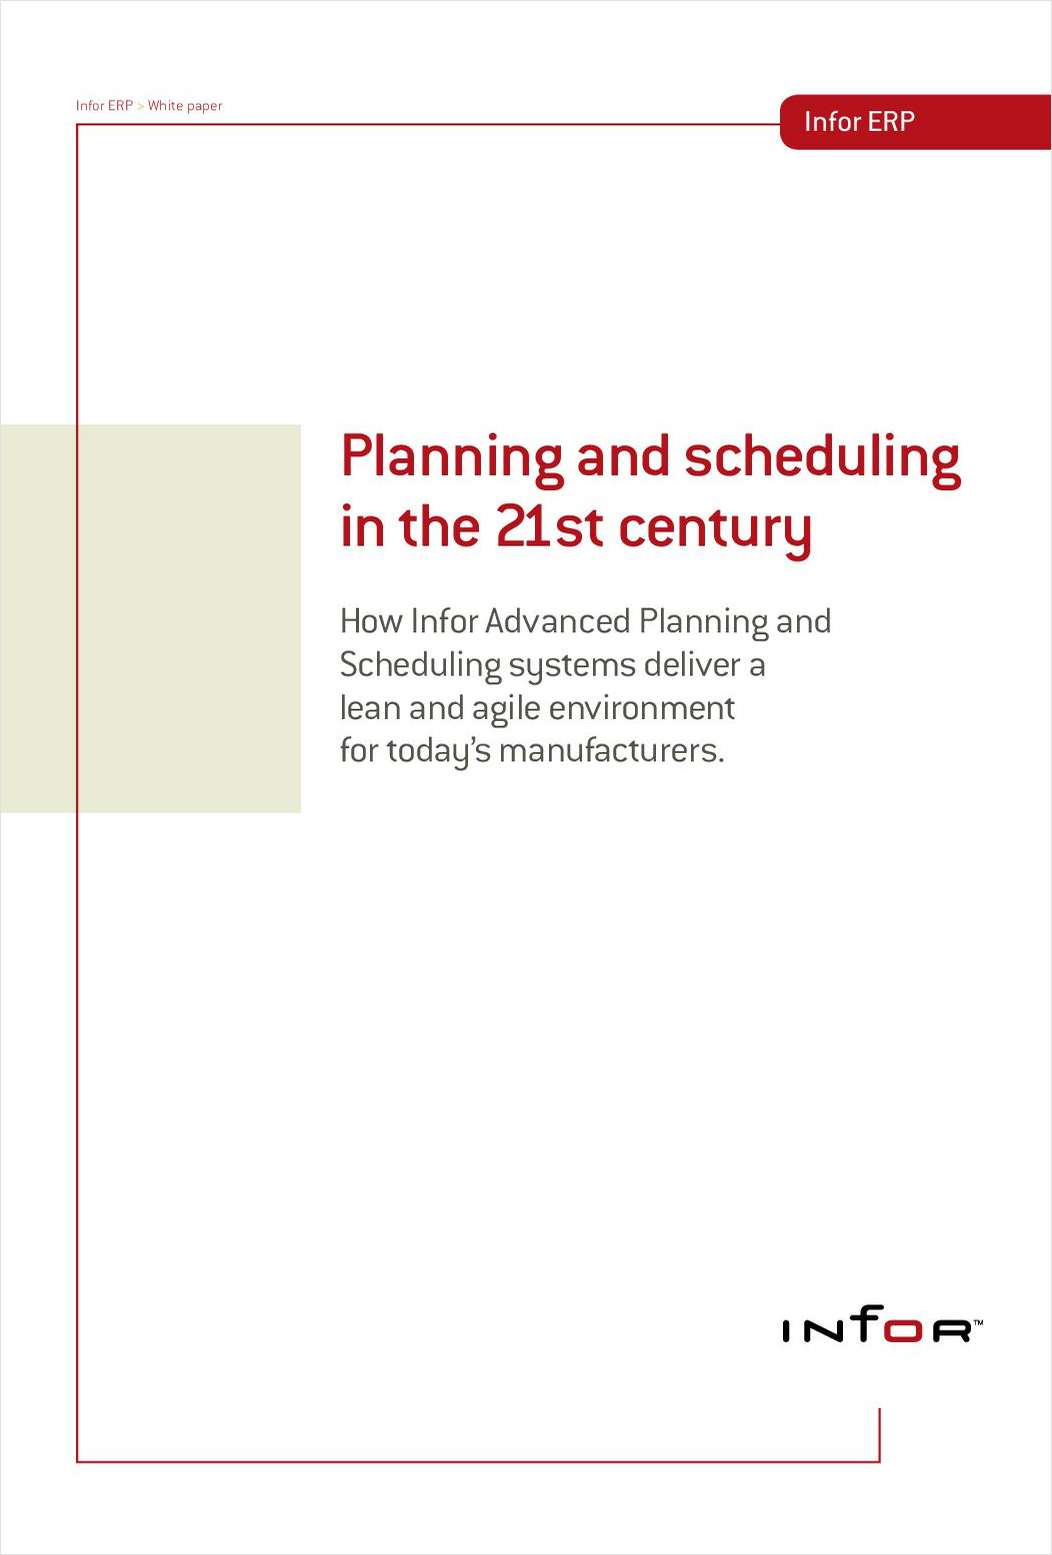 Planning and Scheduling in the 21st Century